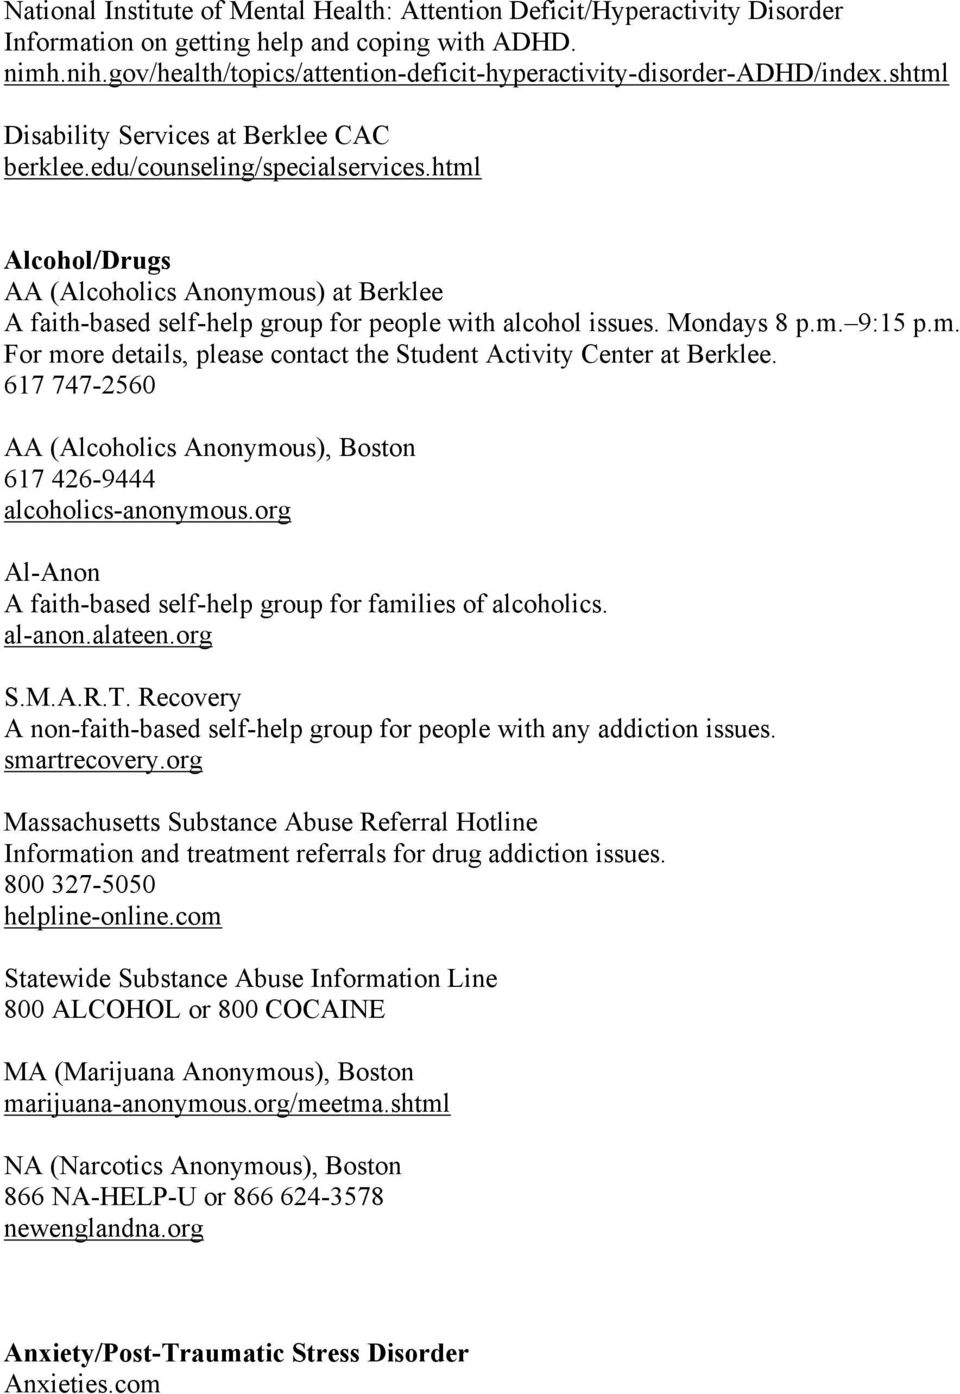 html Alcohol/Drugs AA (Alcoholics Anonymous) at Berklee A faith-based self-help group for people with alcohol issues. Mondays 8 p.m. 9:15 p.m. For more details, please contact the Student Activity Center at Berklee.